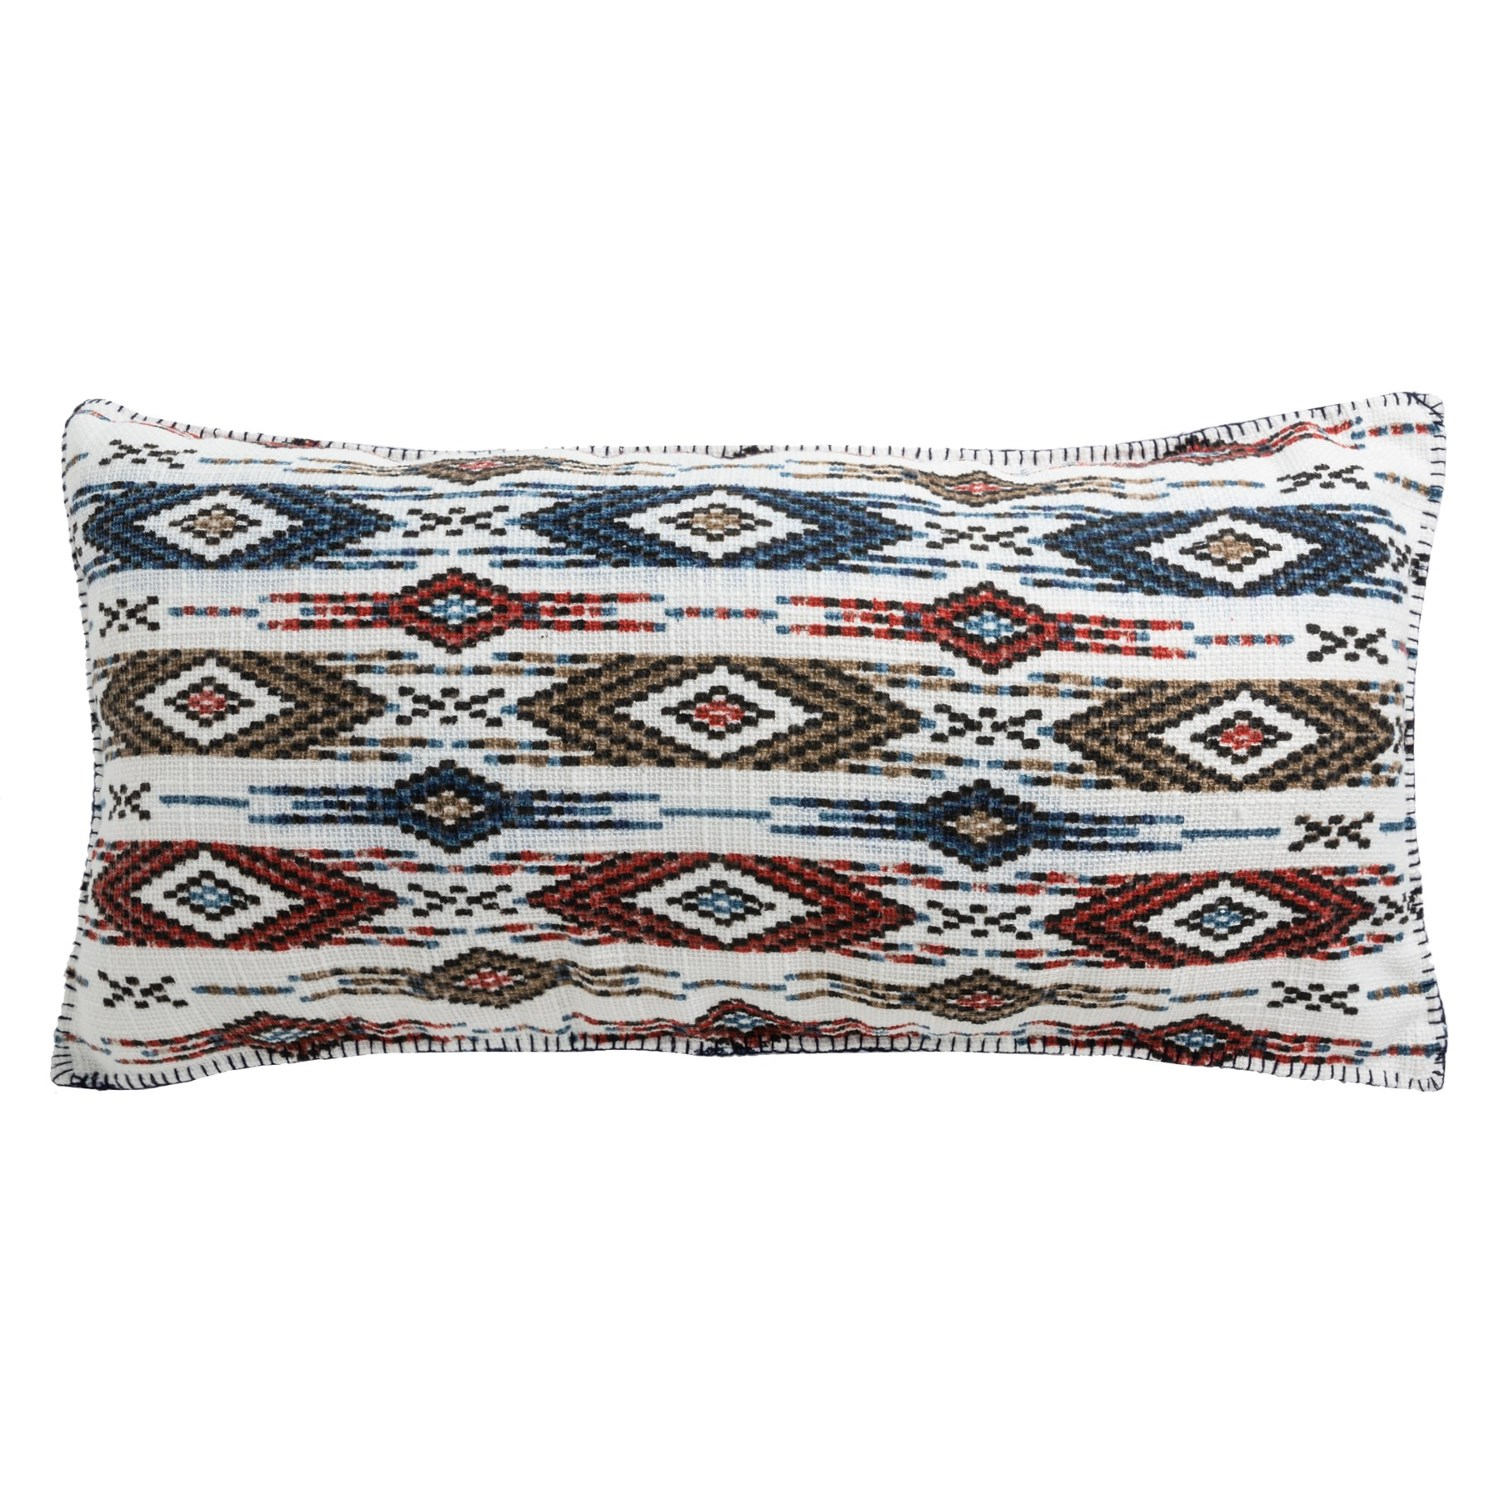 Max Studio Home Decorative Pillows : Max Studio Woven Chevron Checker Decor Pillow - 17x35? - Save 33%